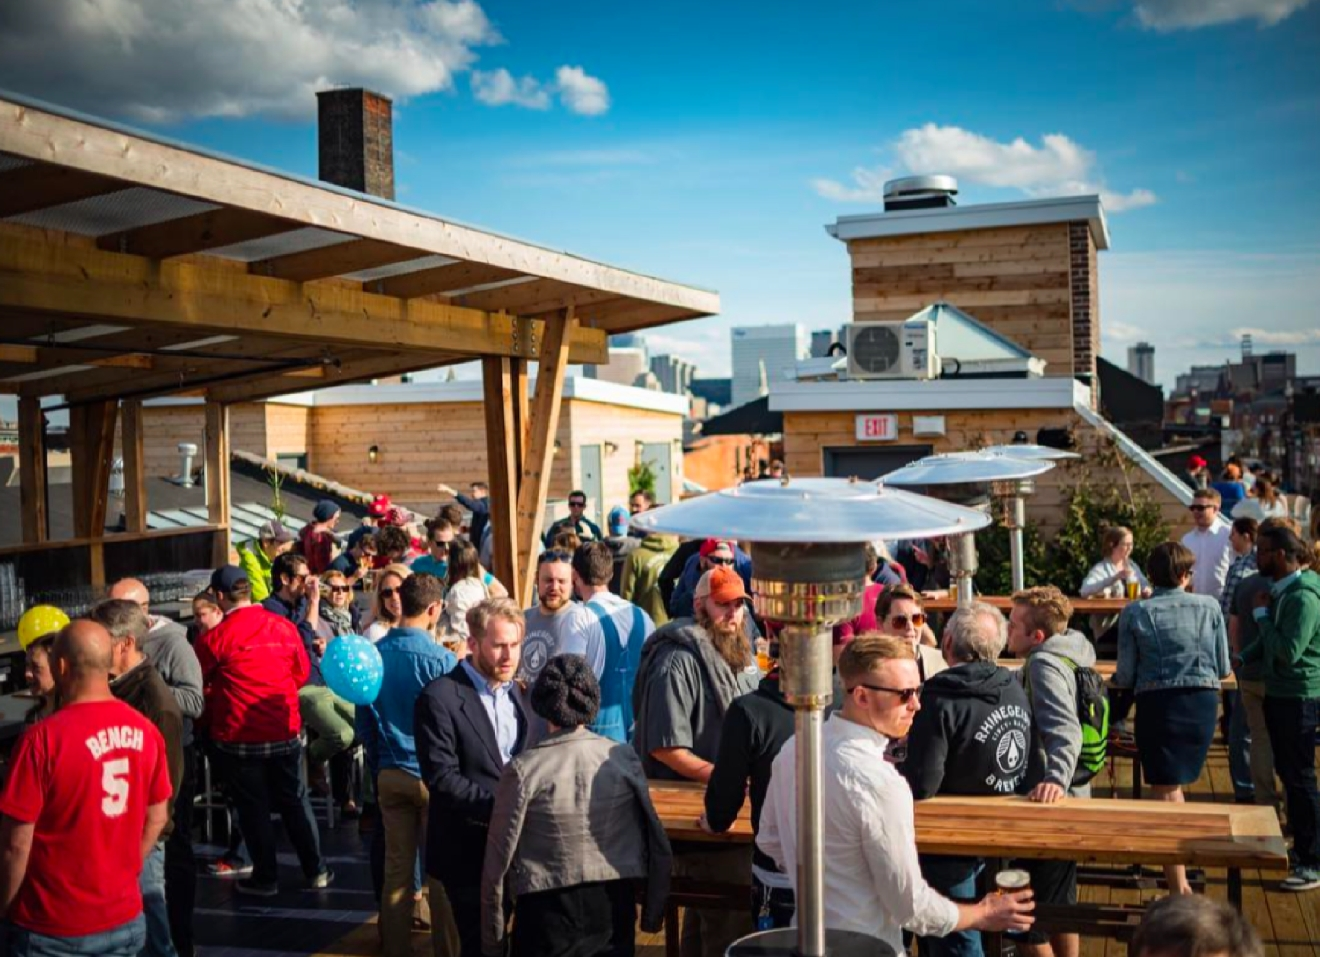 Rhinegeist's Rooftop Bar -- located in Over-the-Rhine at 1910 Elm Street (45202). / Image courtesy of Rhinegeist Brewery